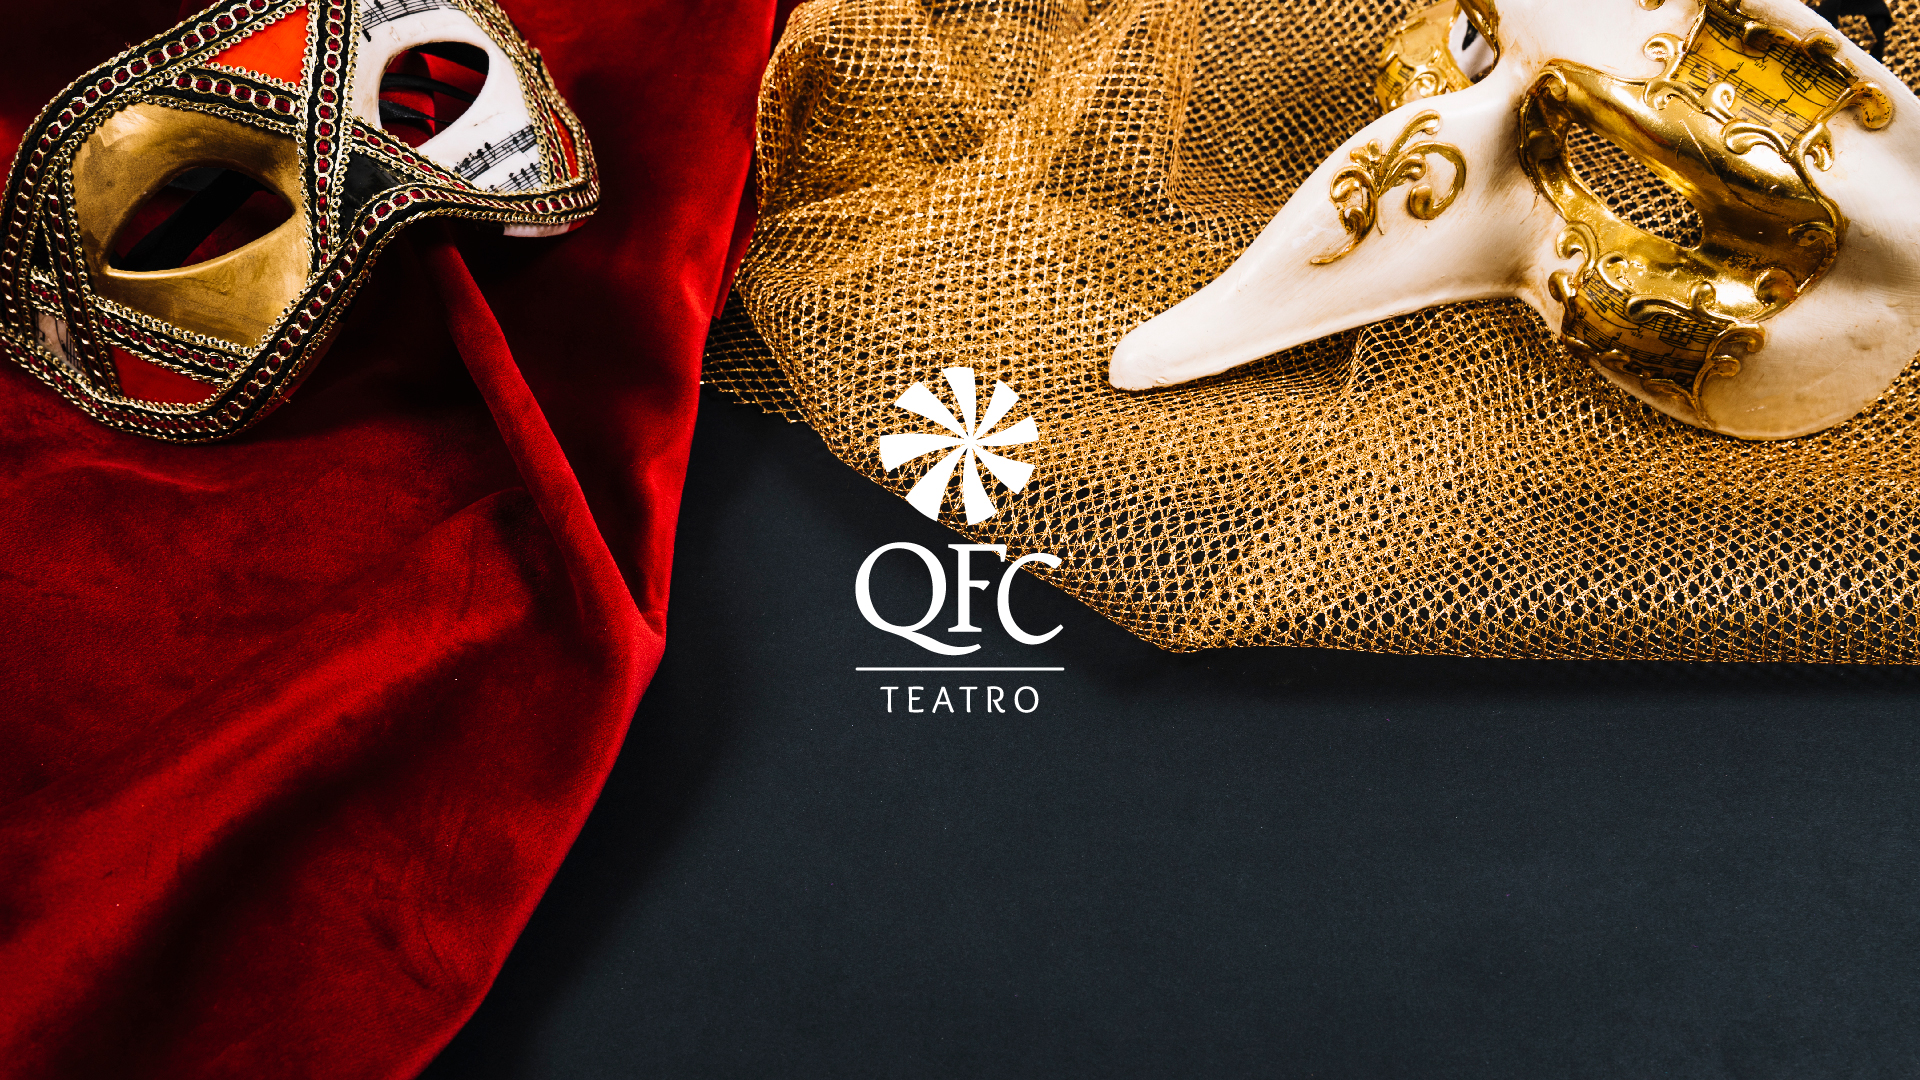 Wider View Portfolio QFC Teatro header